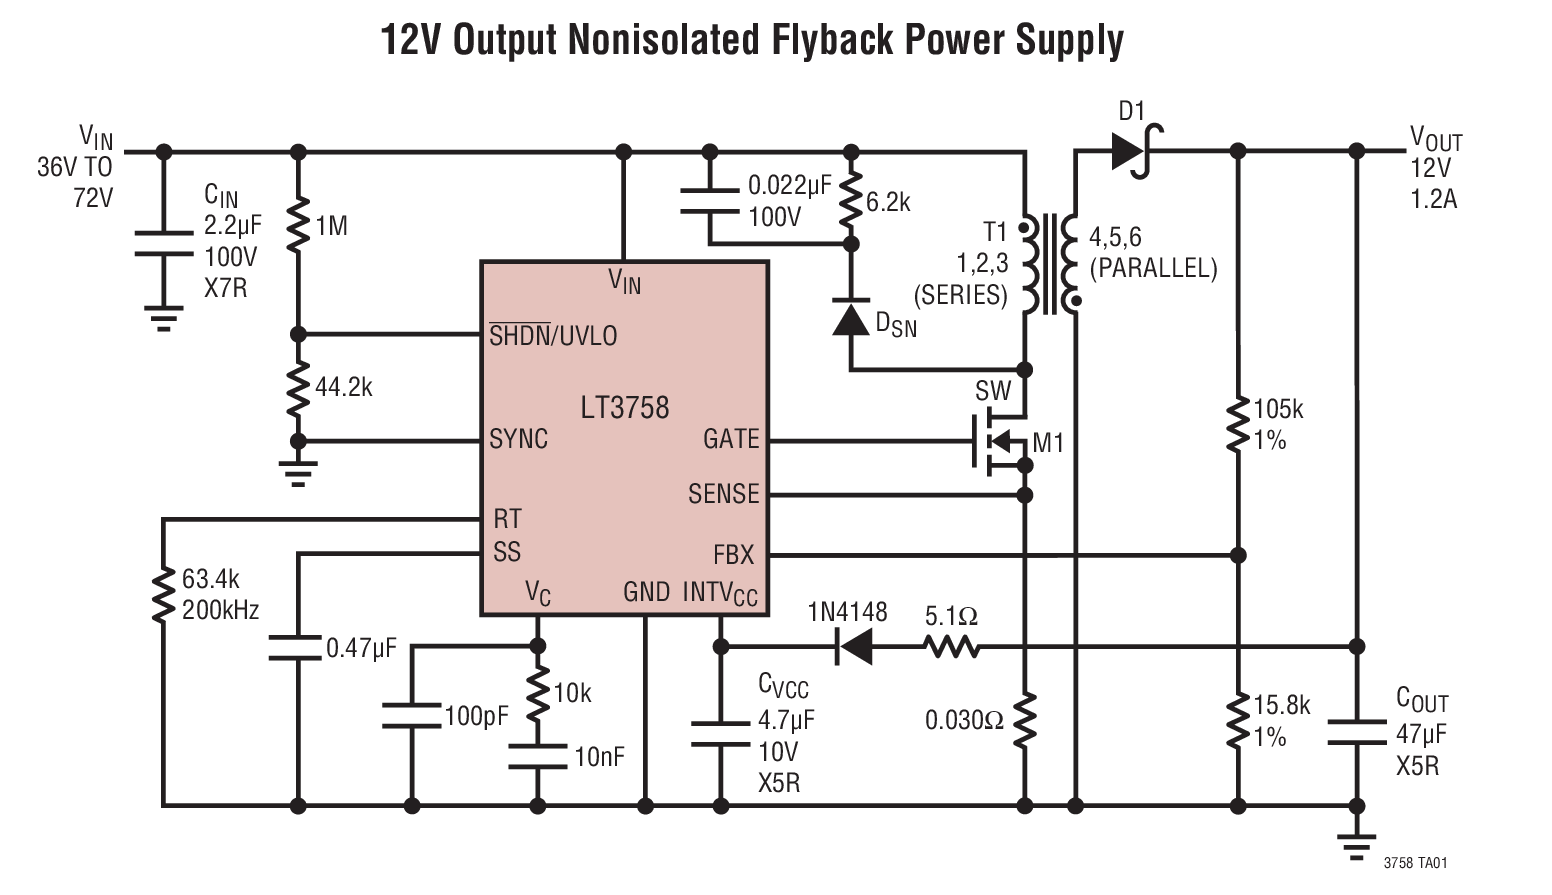 Lt3758 High Input Voltage Boost Flyback Sepic And Inverting Circuit Or To Converter A Negative Positive Typical Application